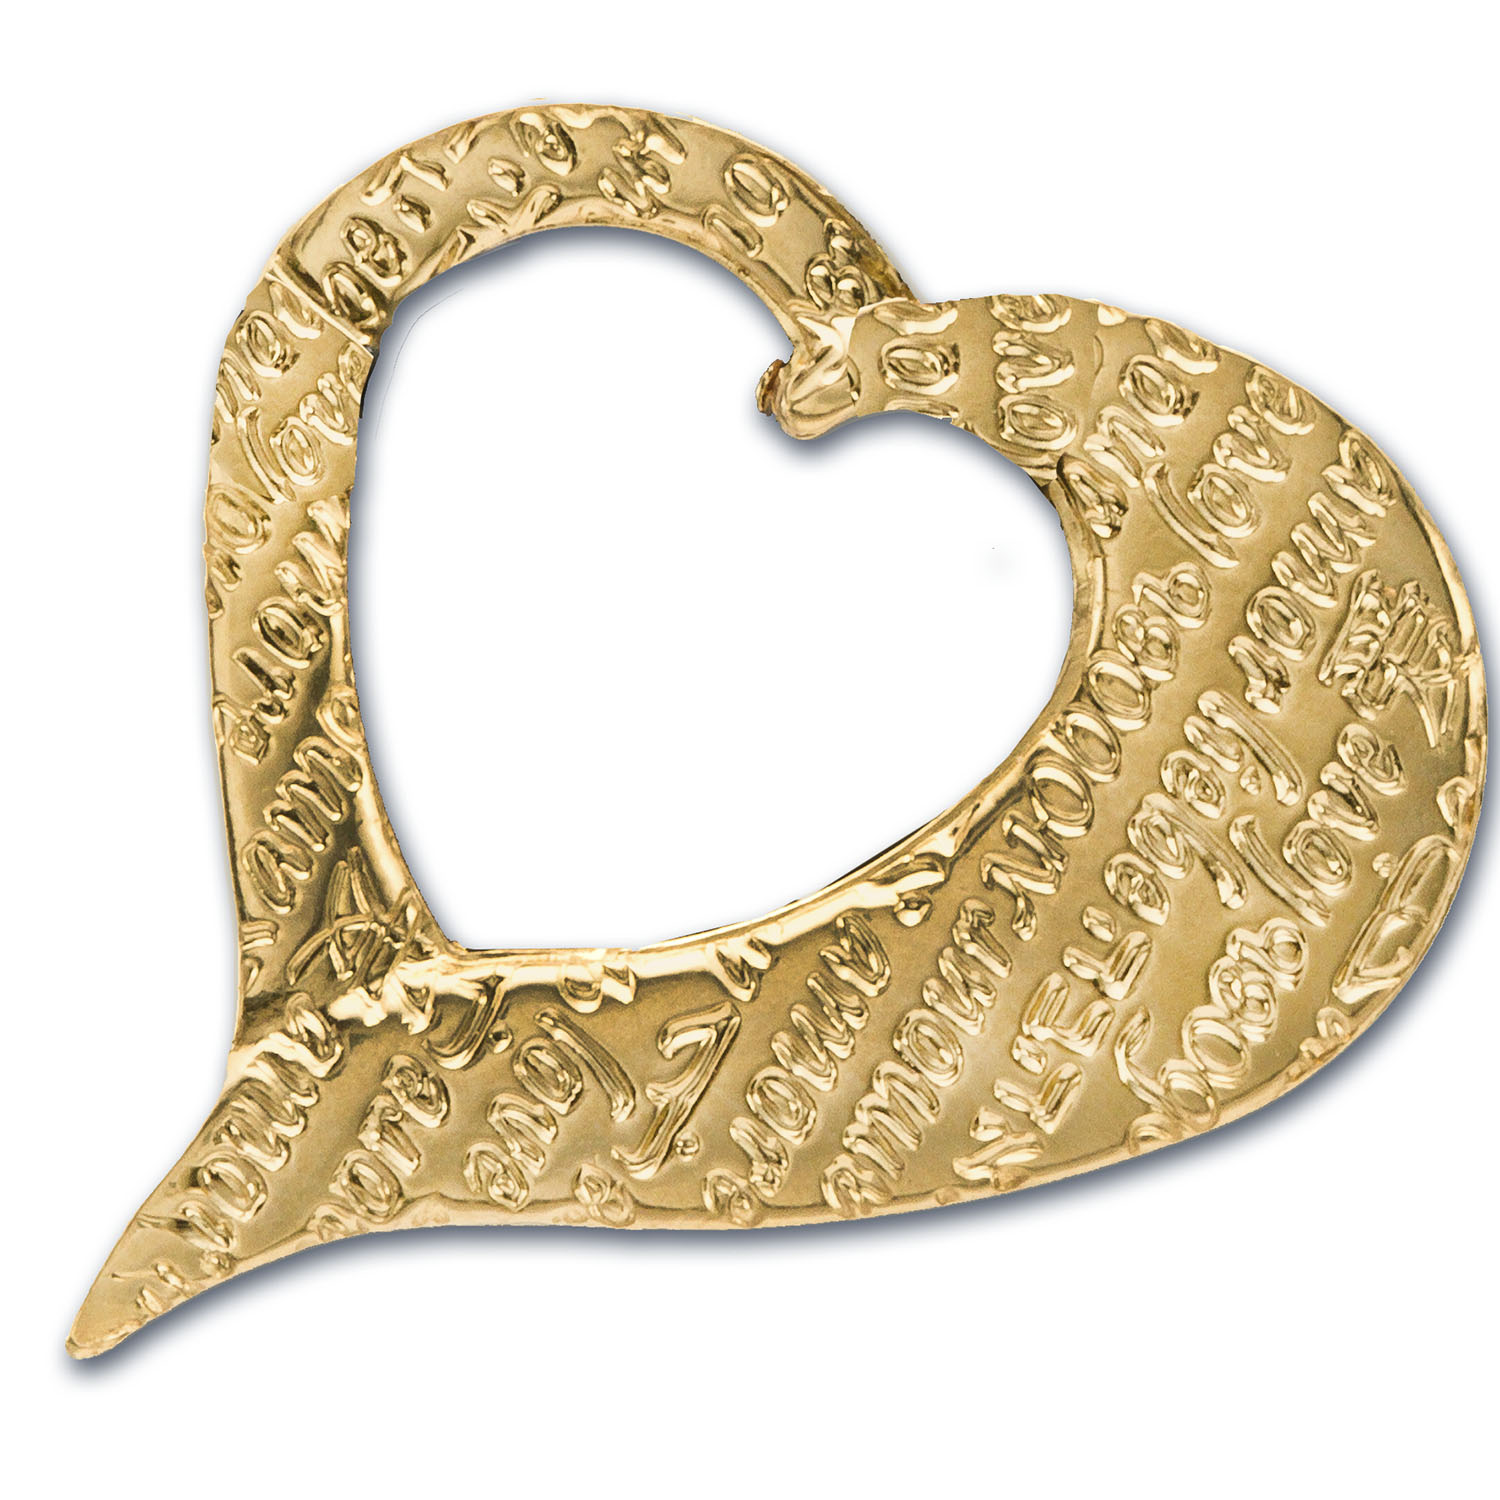 4 gram Gold Heart - PAMP Suisse (18K, Flame of Love Talisman)